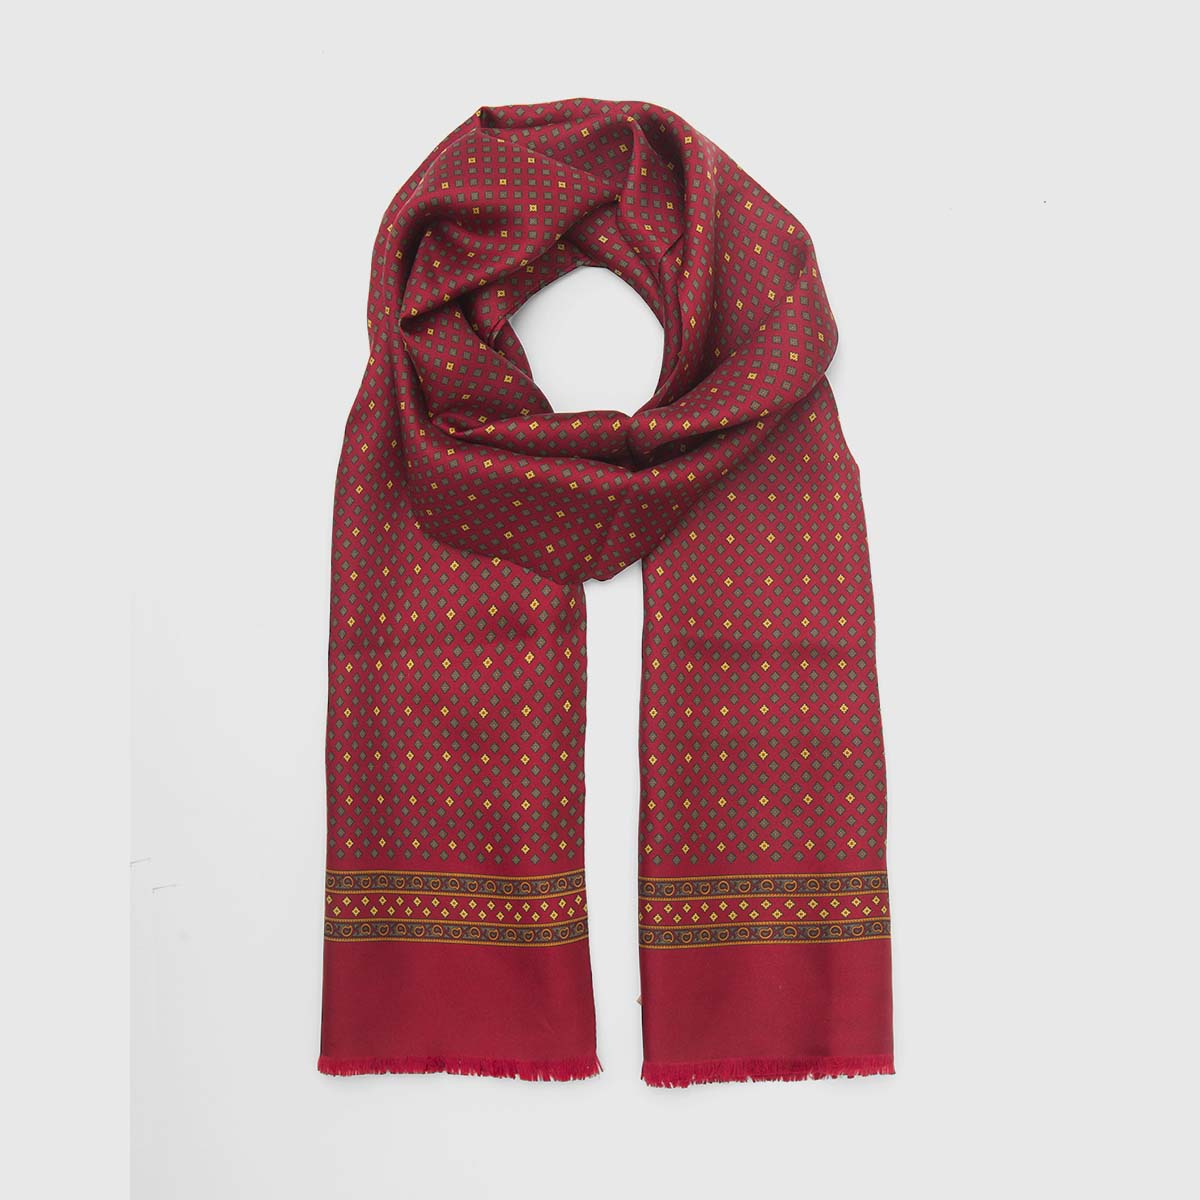 Fringed Red silk scarf with iconic patterns